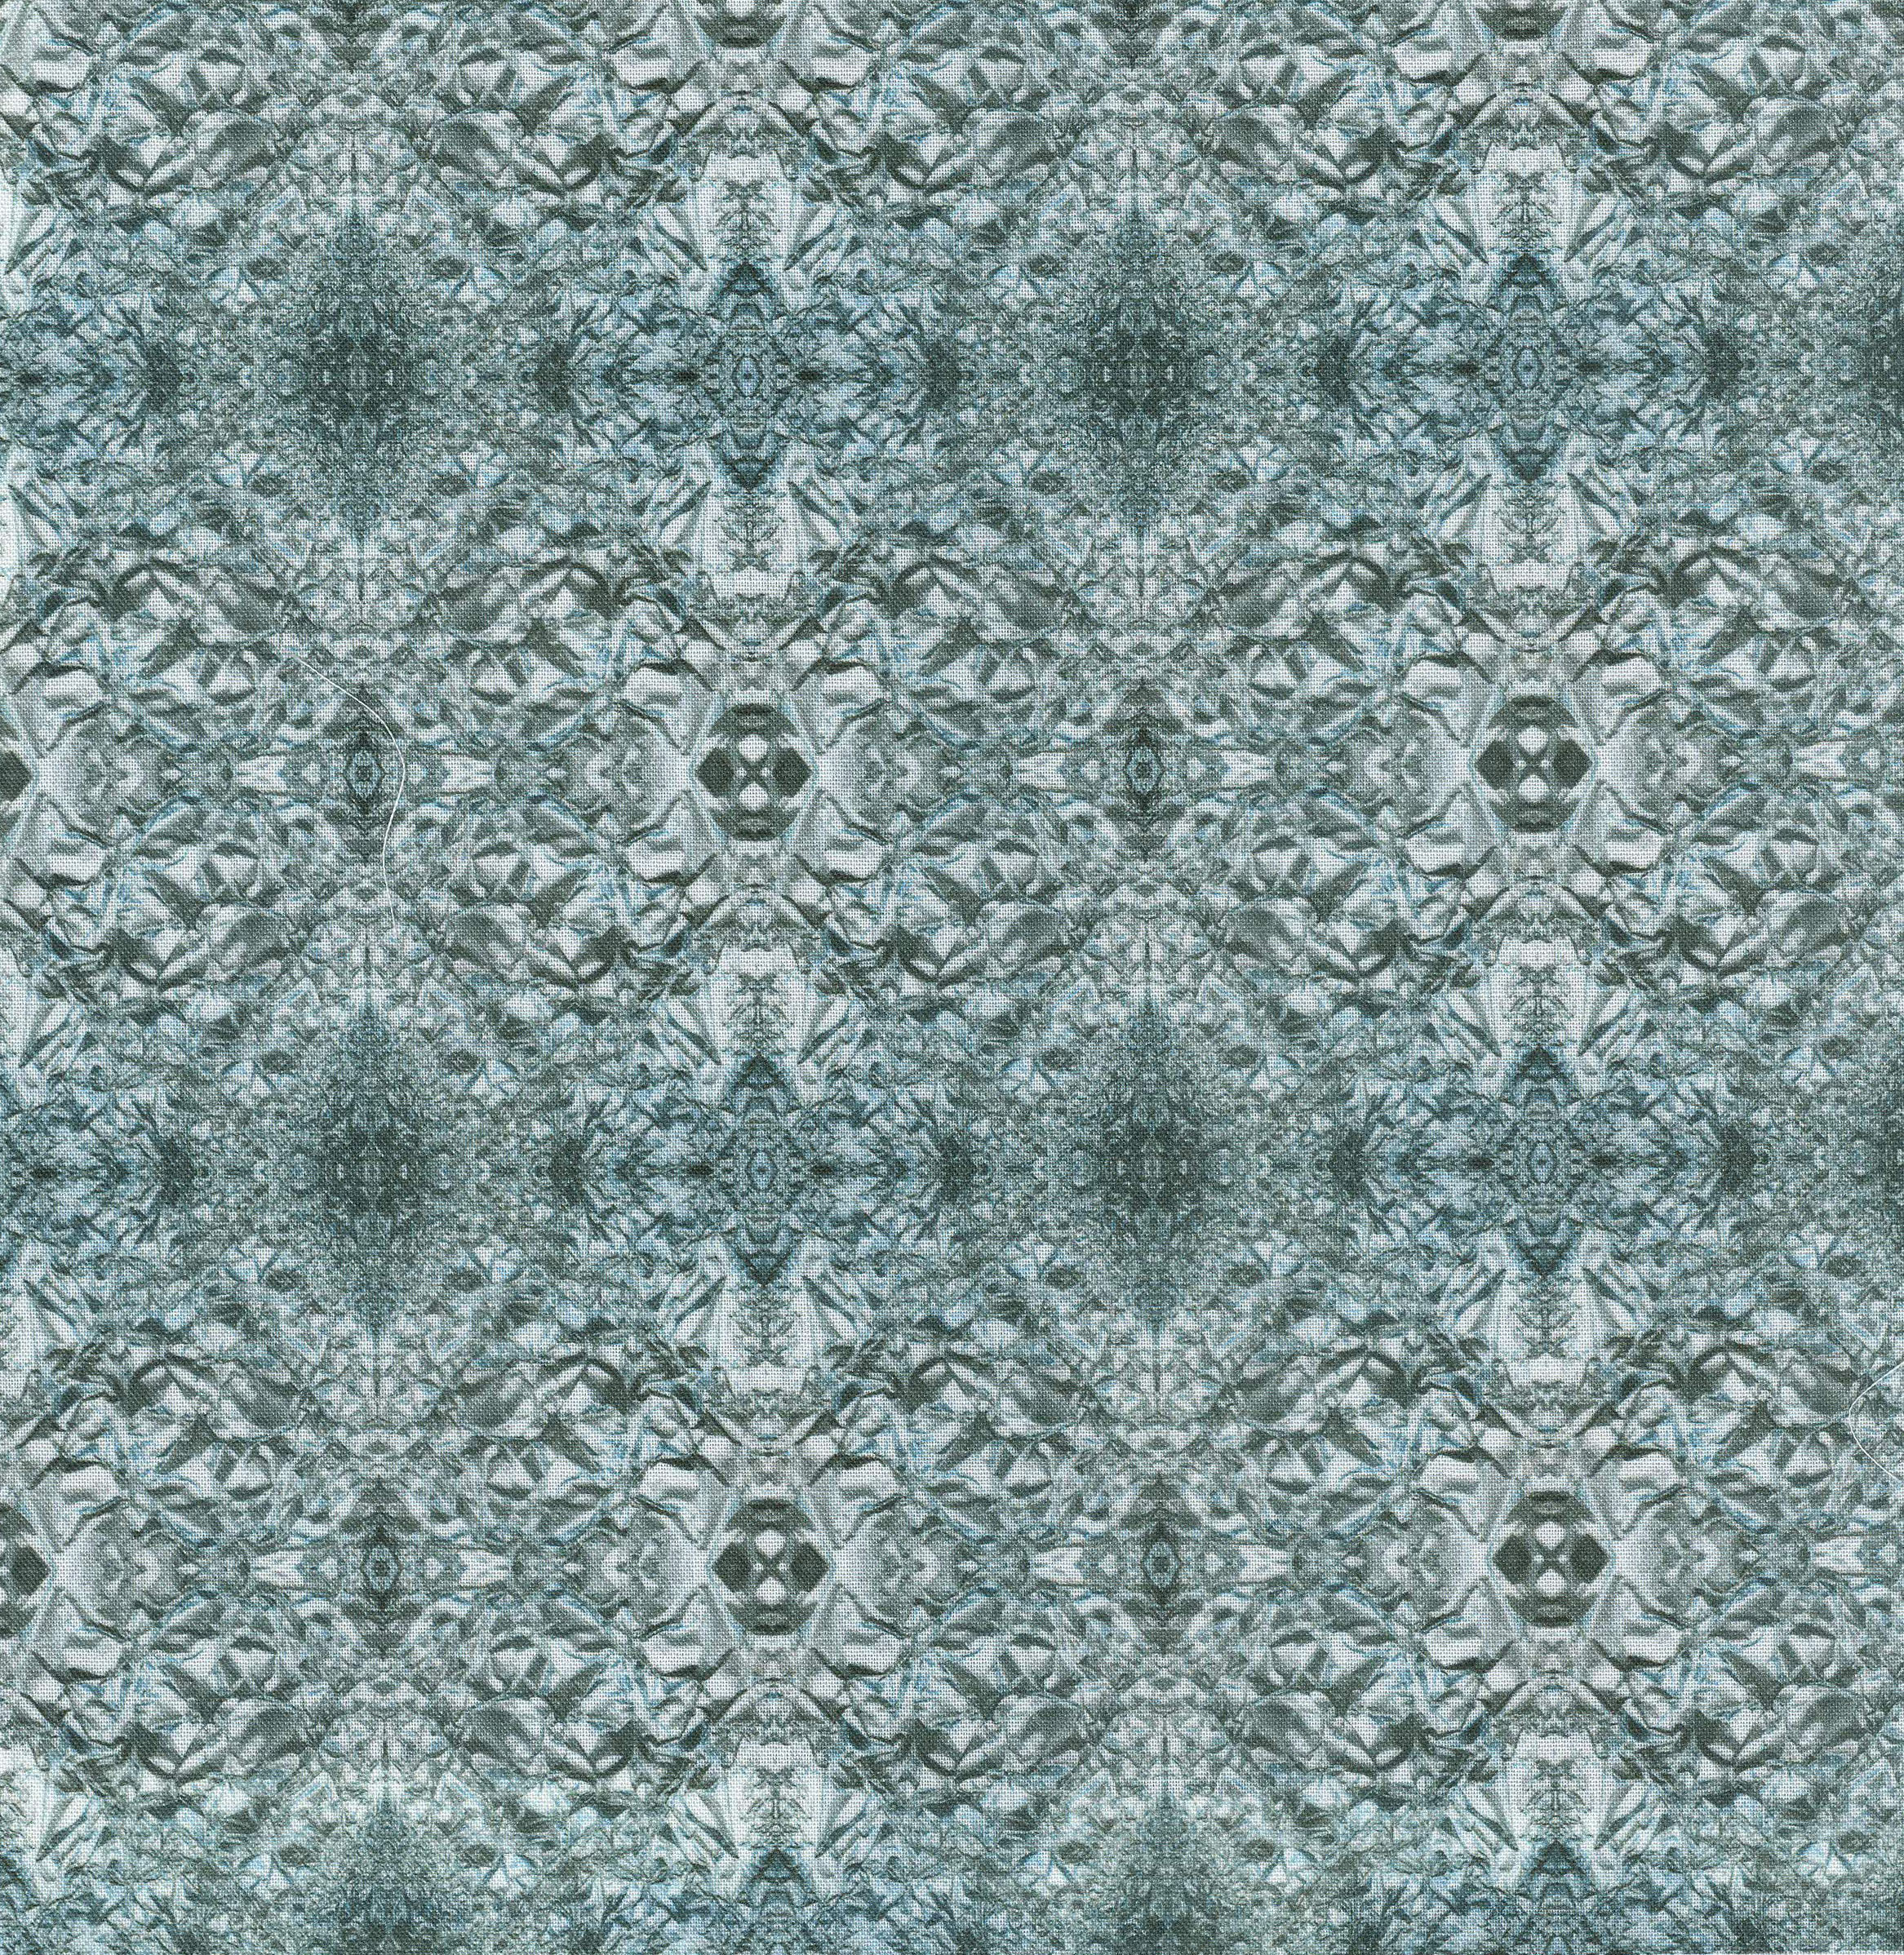 silver foil fabric scan